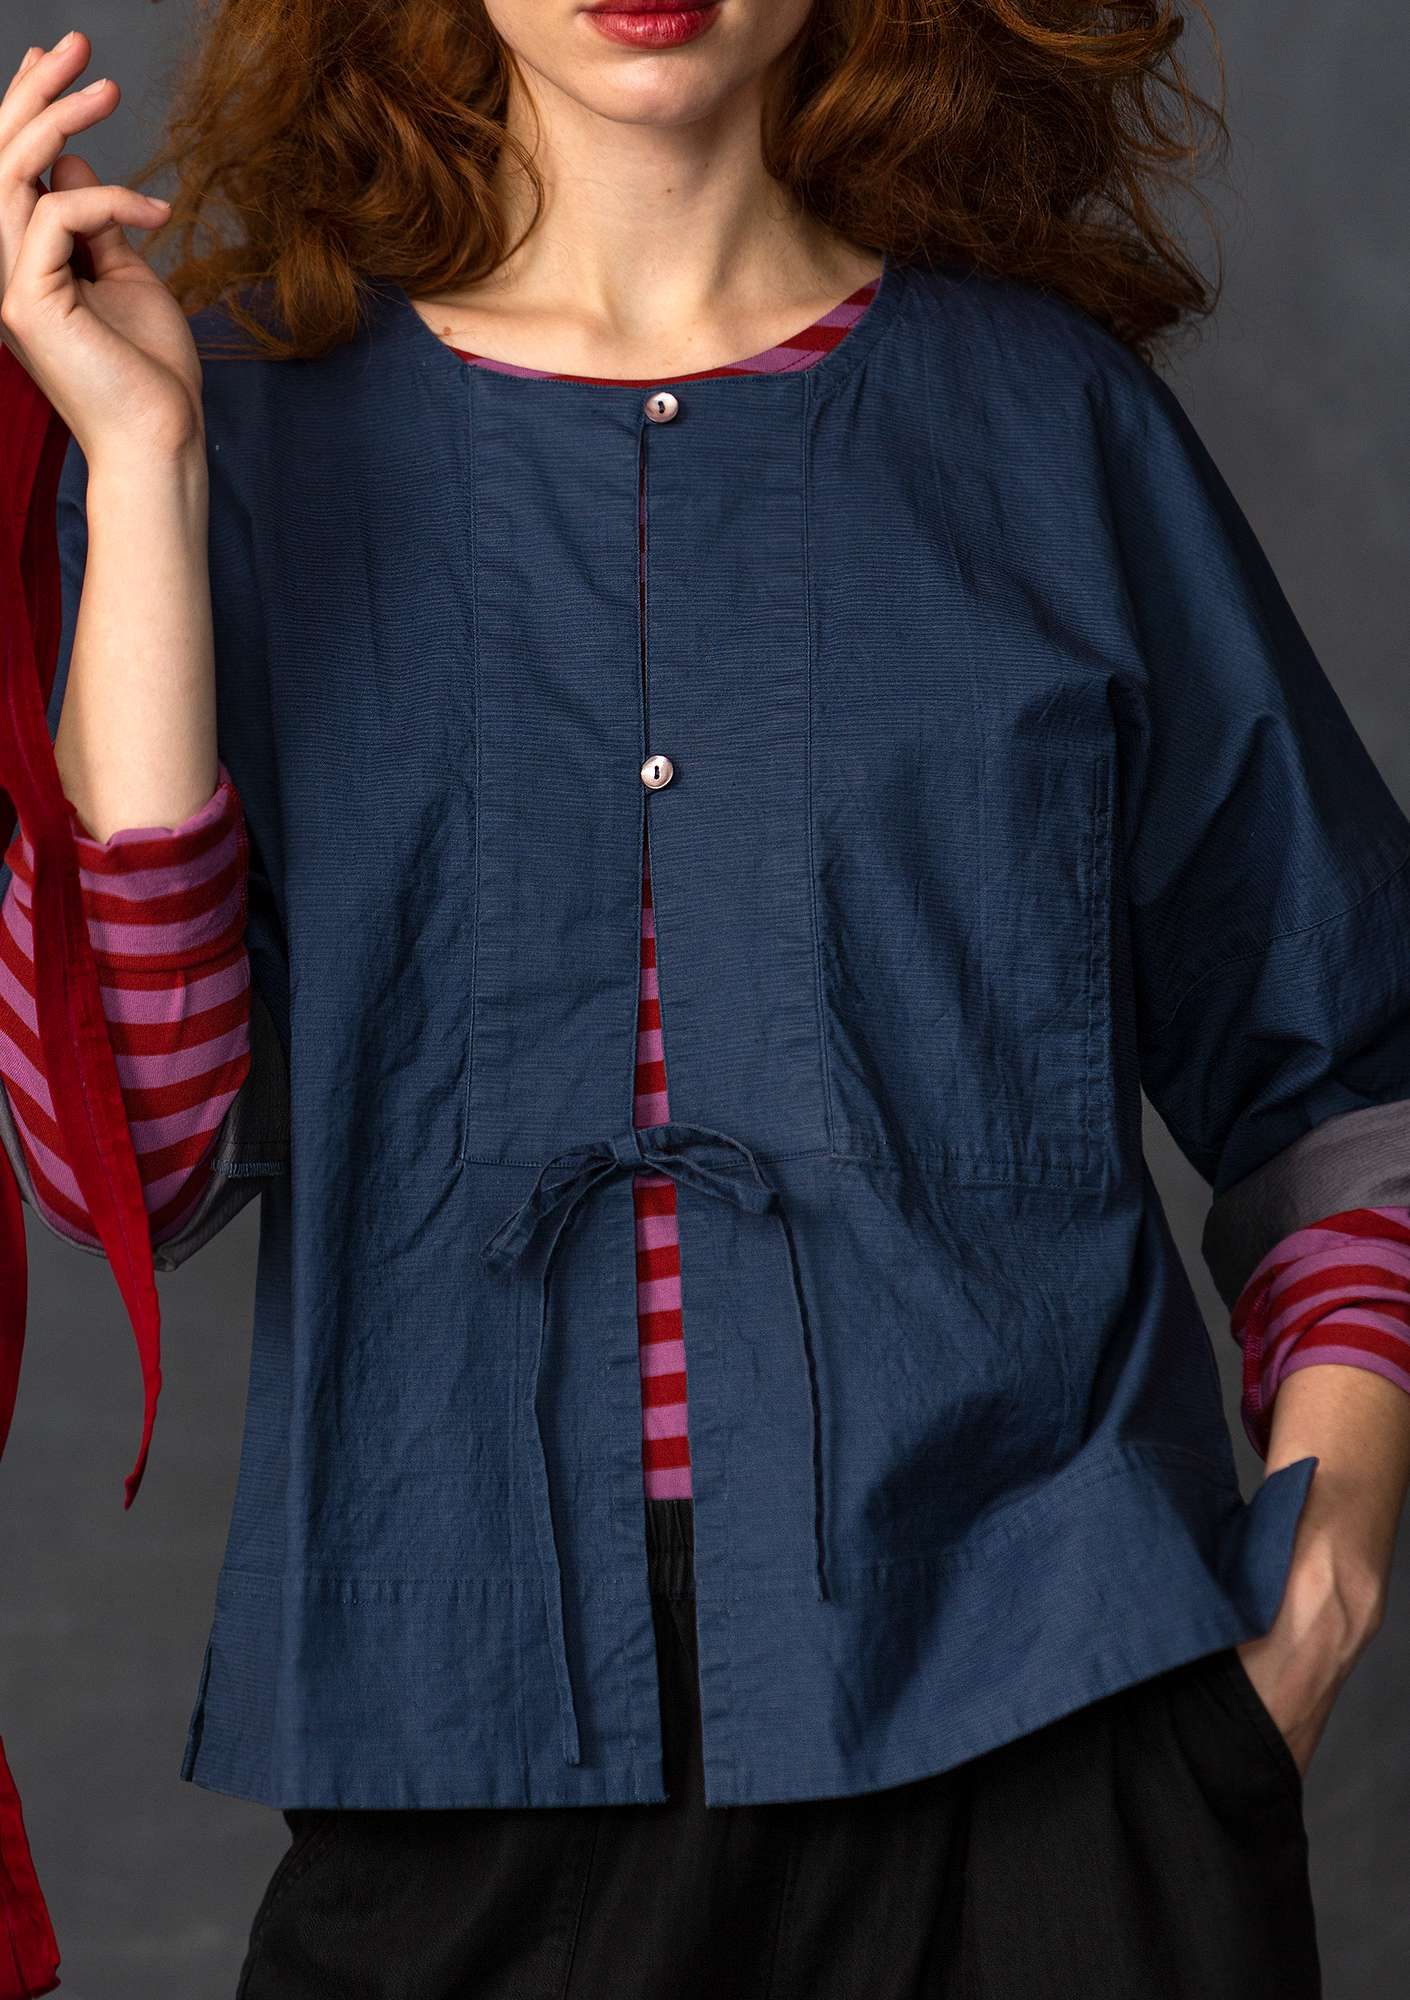 Linen/cotton blouse-style jacket indigo